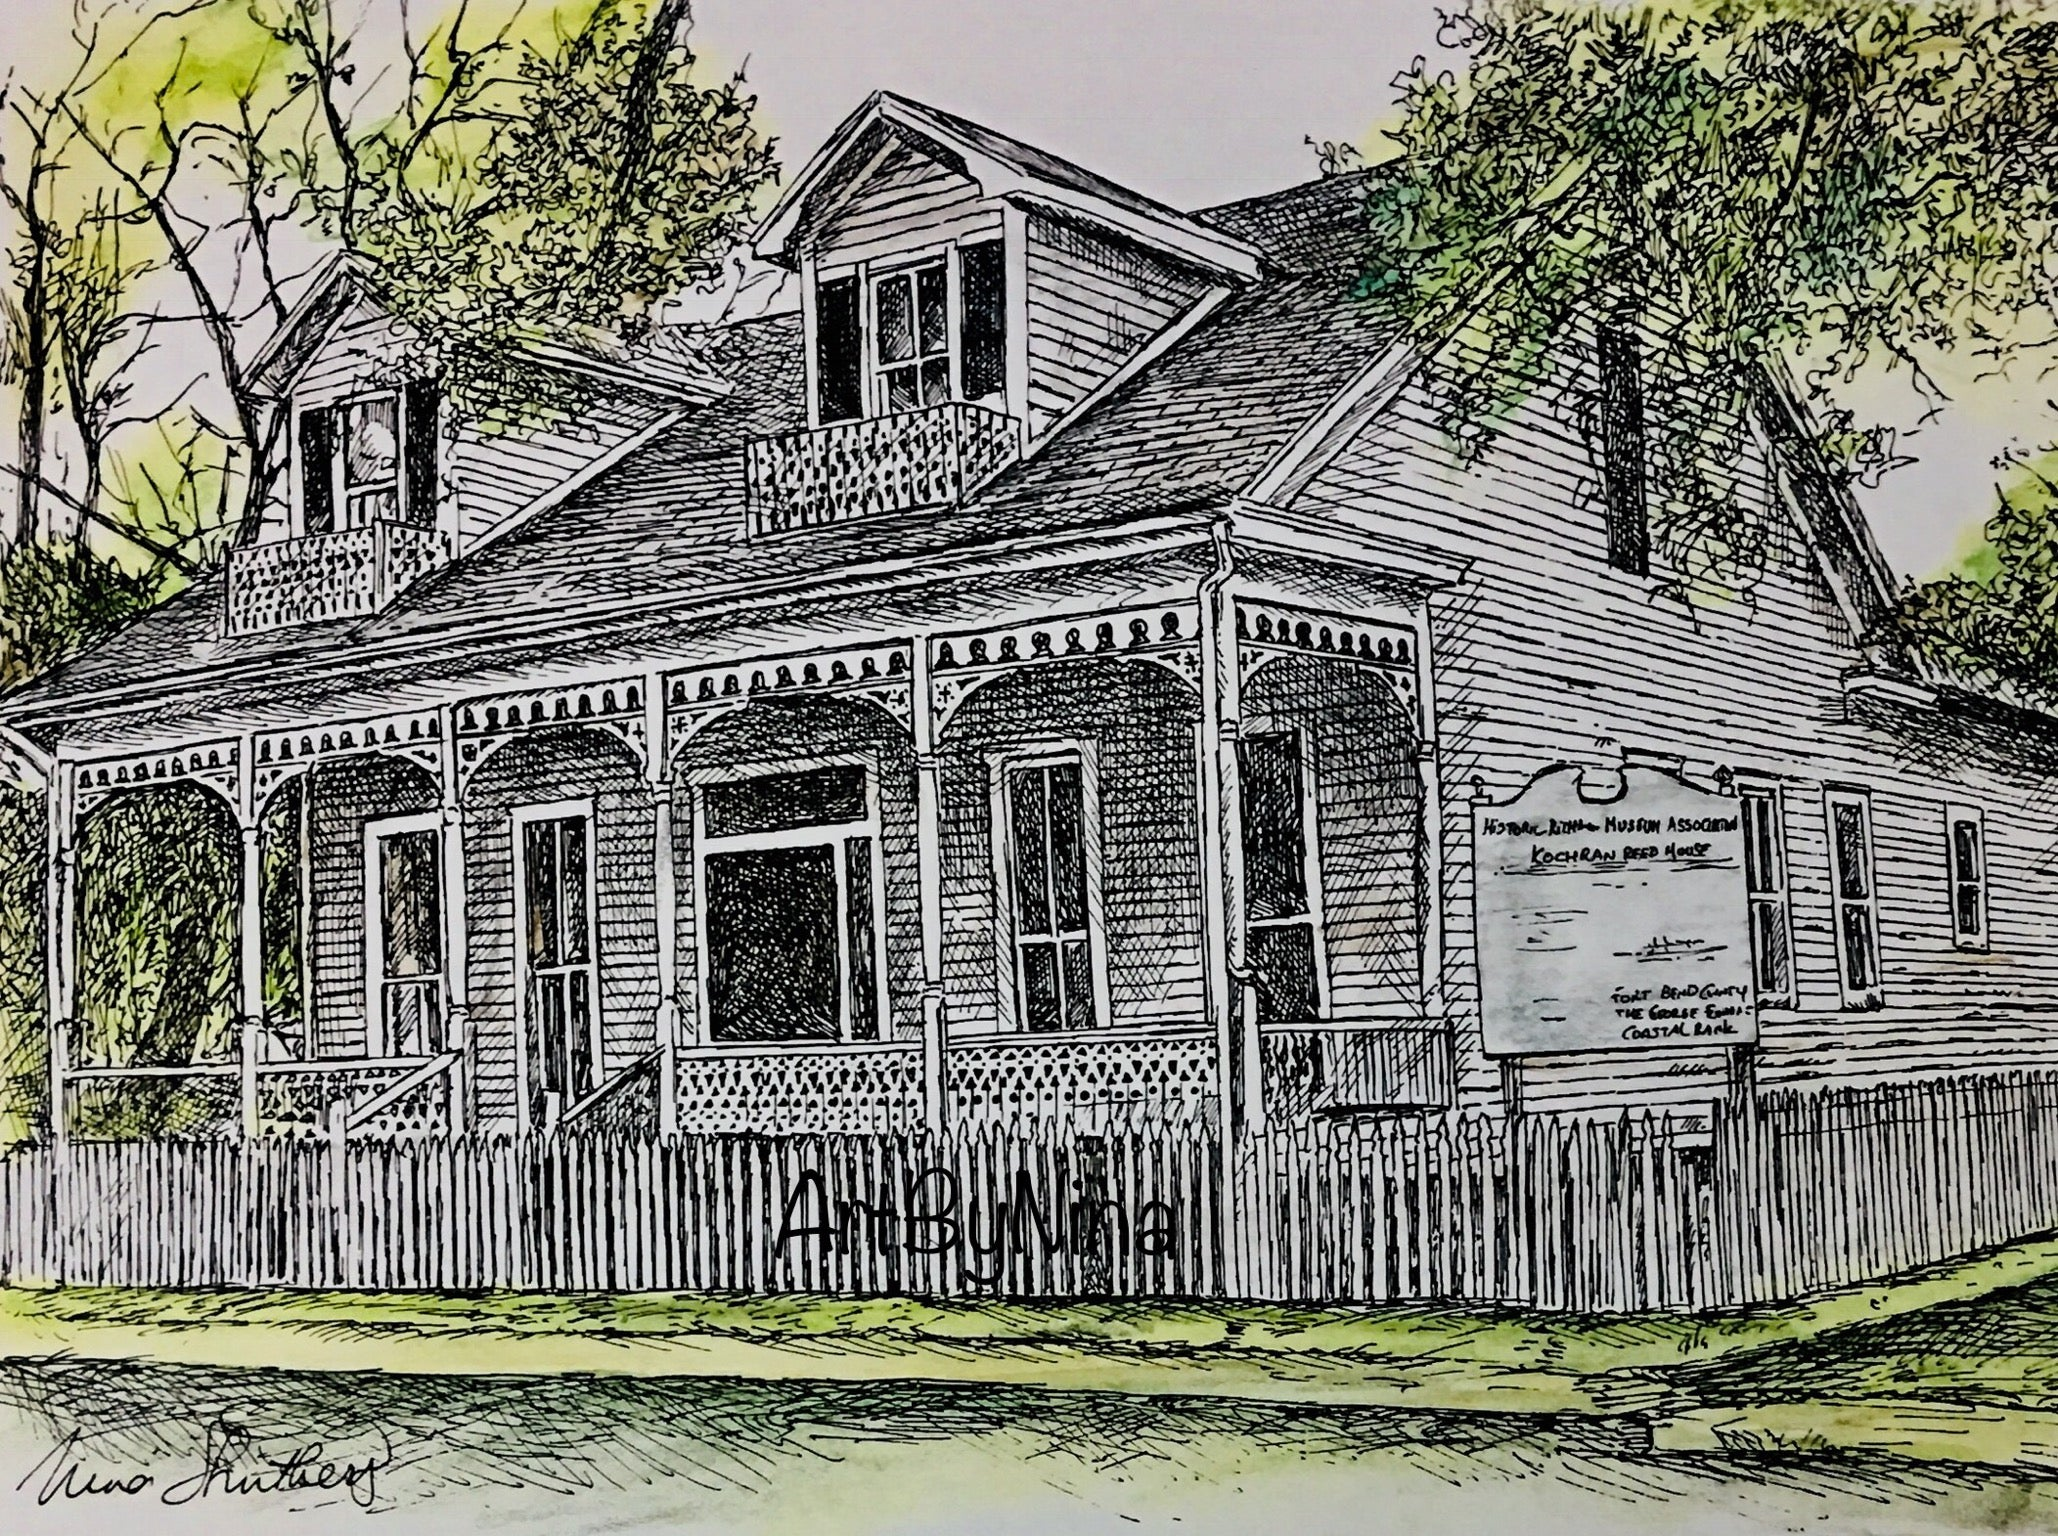 Fort Bend Art - Kochran Reed House, Richmond #256